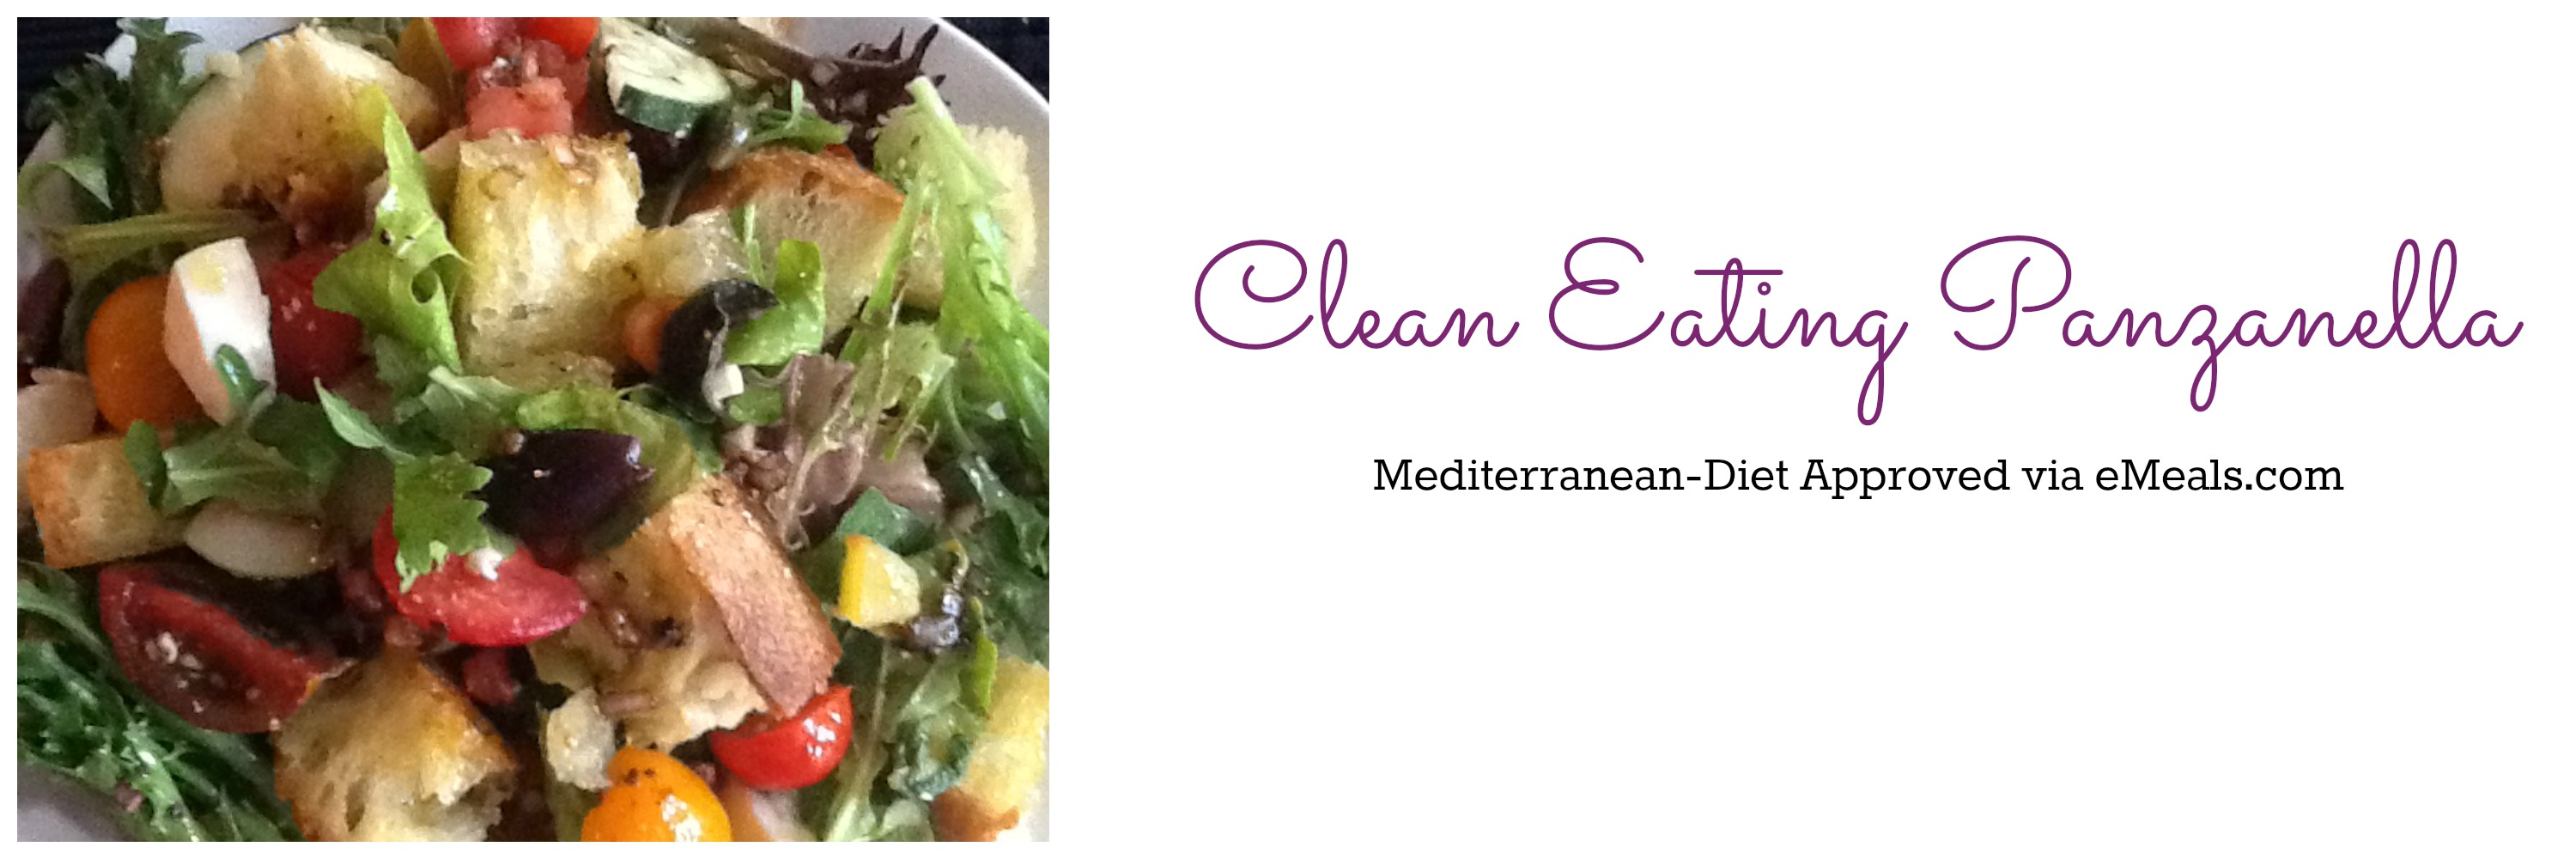 Clean Eating Mediterranean Panzanella